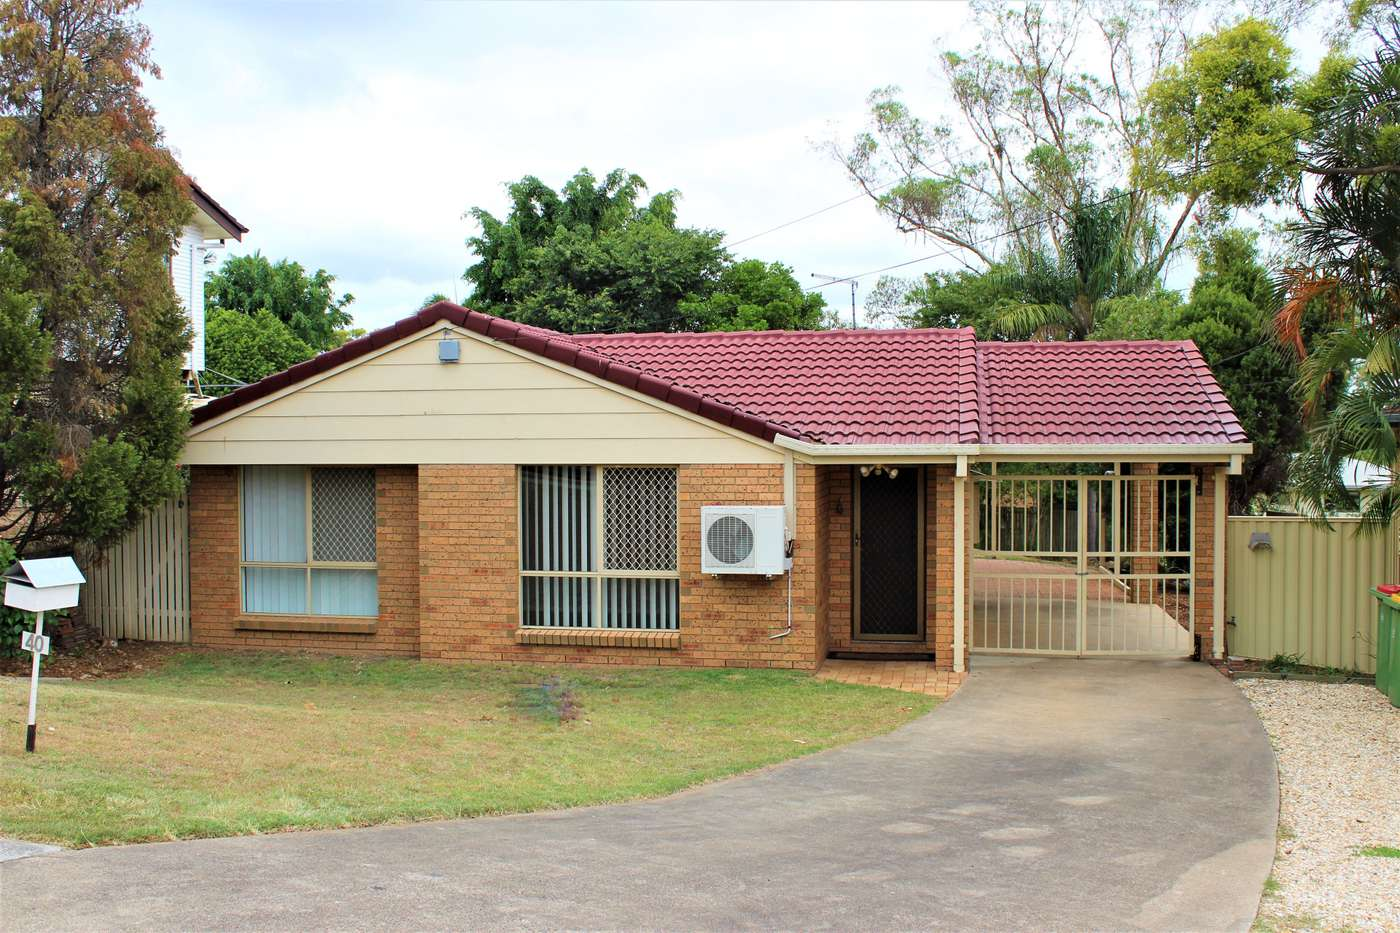 Main view of Homely house listing, 40 Mary Street, Bundamba, QLD 4304